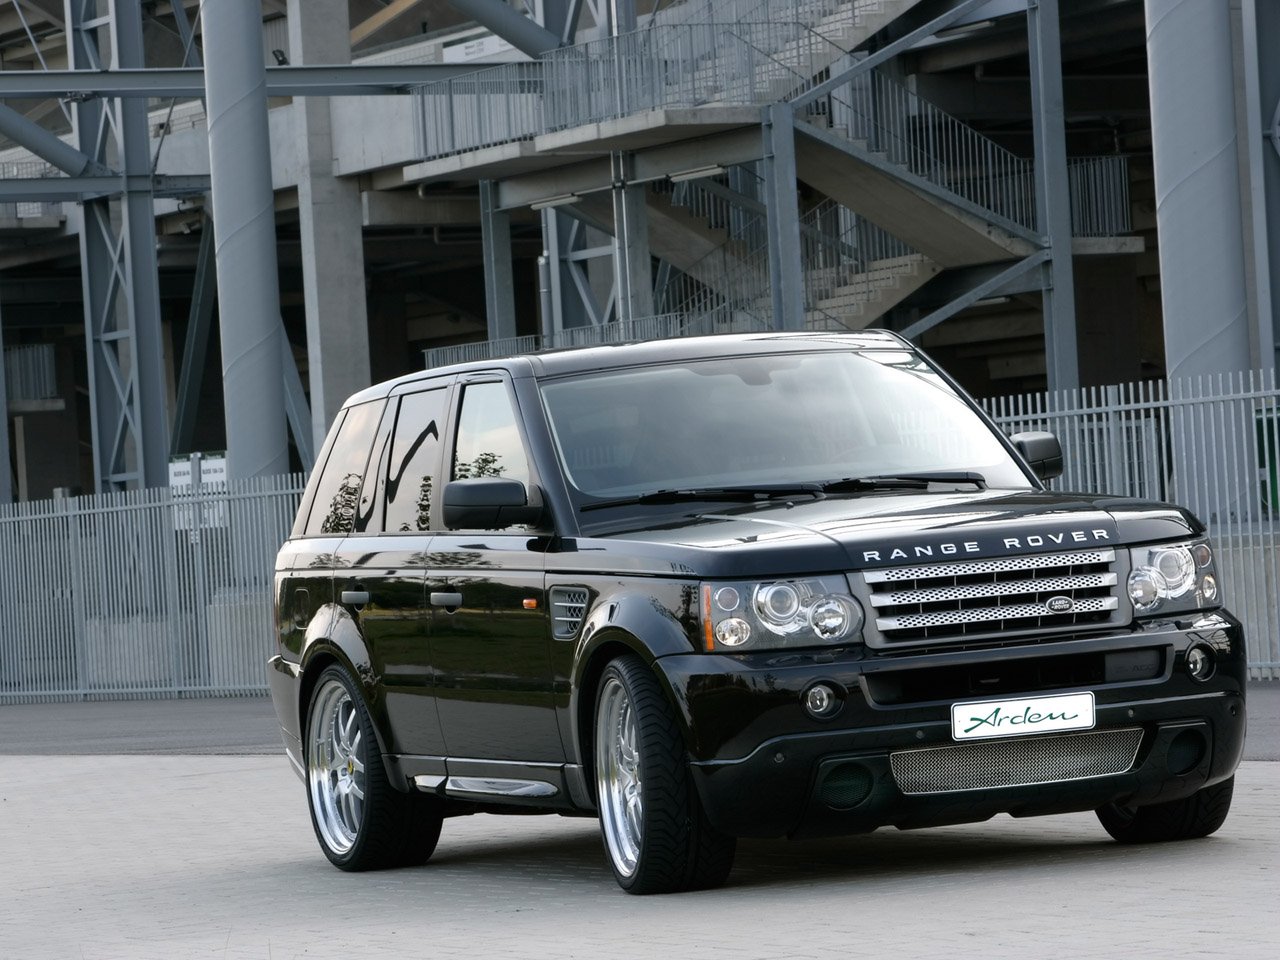 2009 land rover range rover sport pictures cargurus. Black Bedroom Furniture Sets. Home Design Ideas